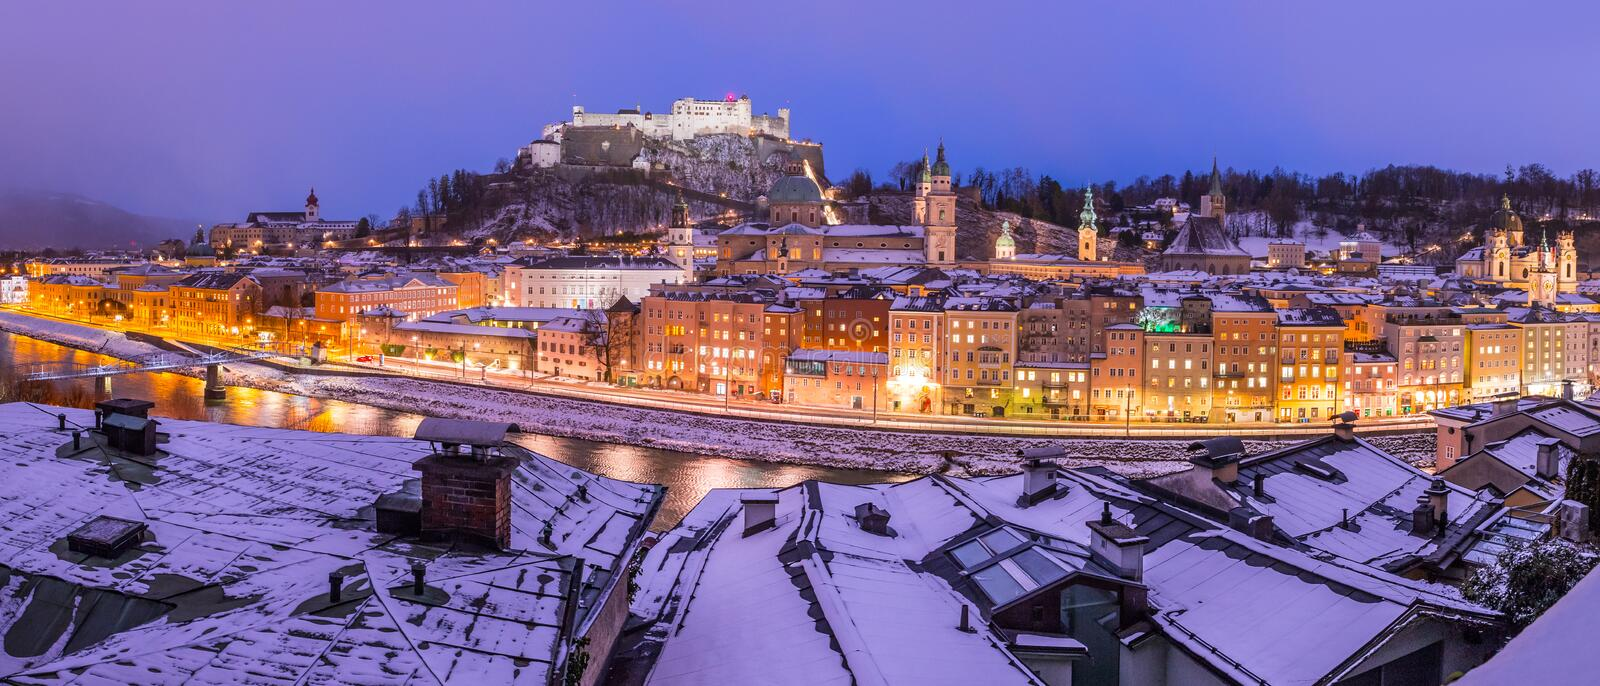 Salzburg winter panorama at christmas time, old city and rooftops in the evening, Austria stock photography